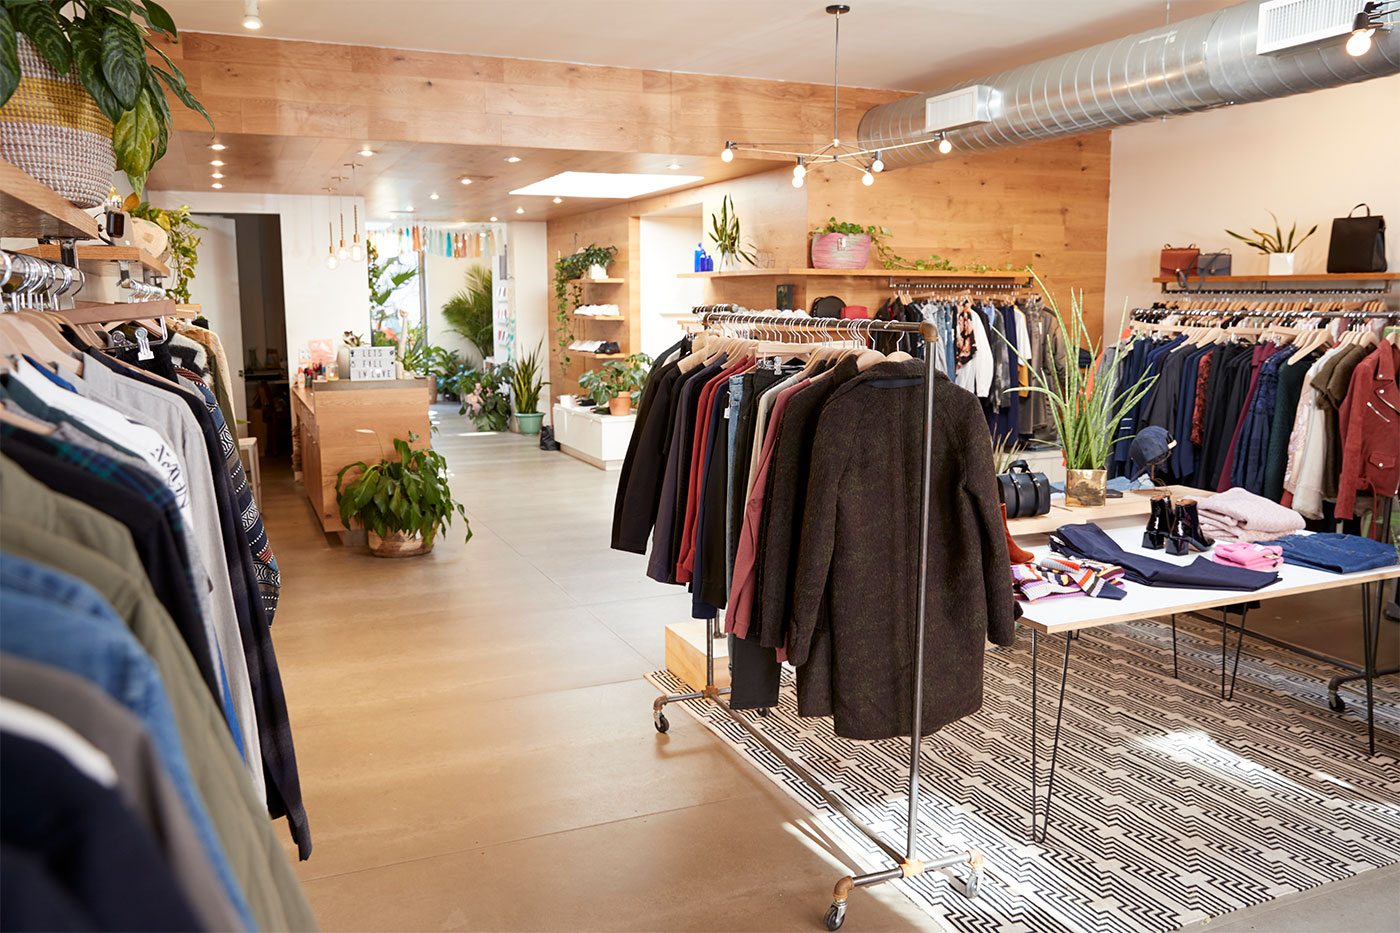 Cleaning Services for Retail - Retail Cleaning Services in Houston